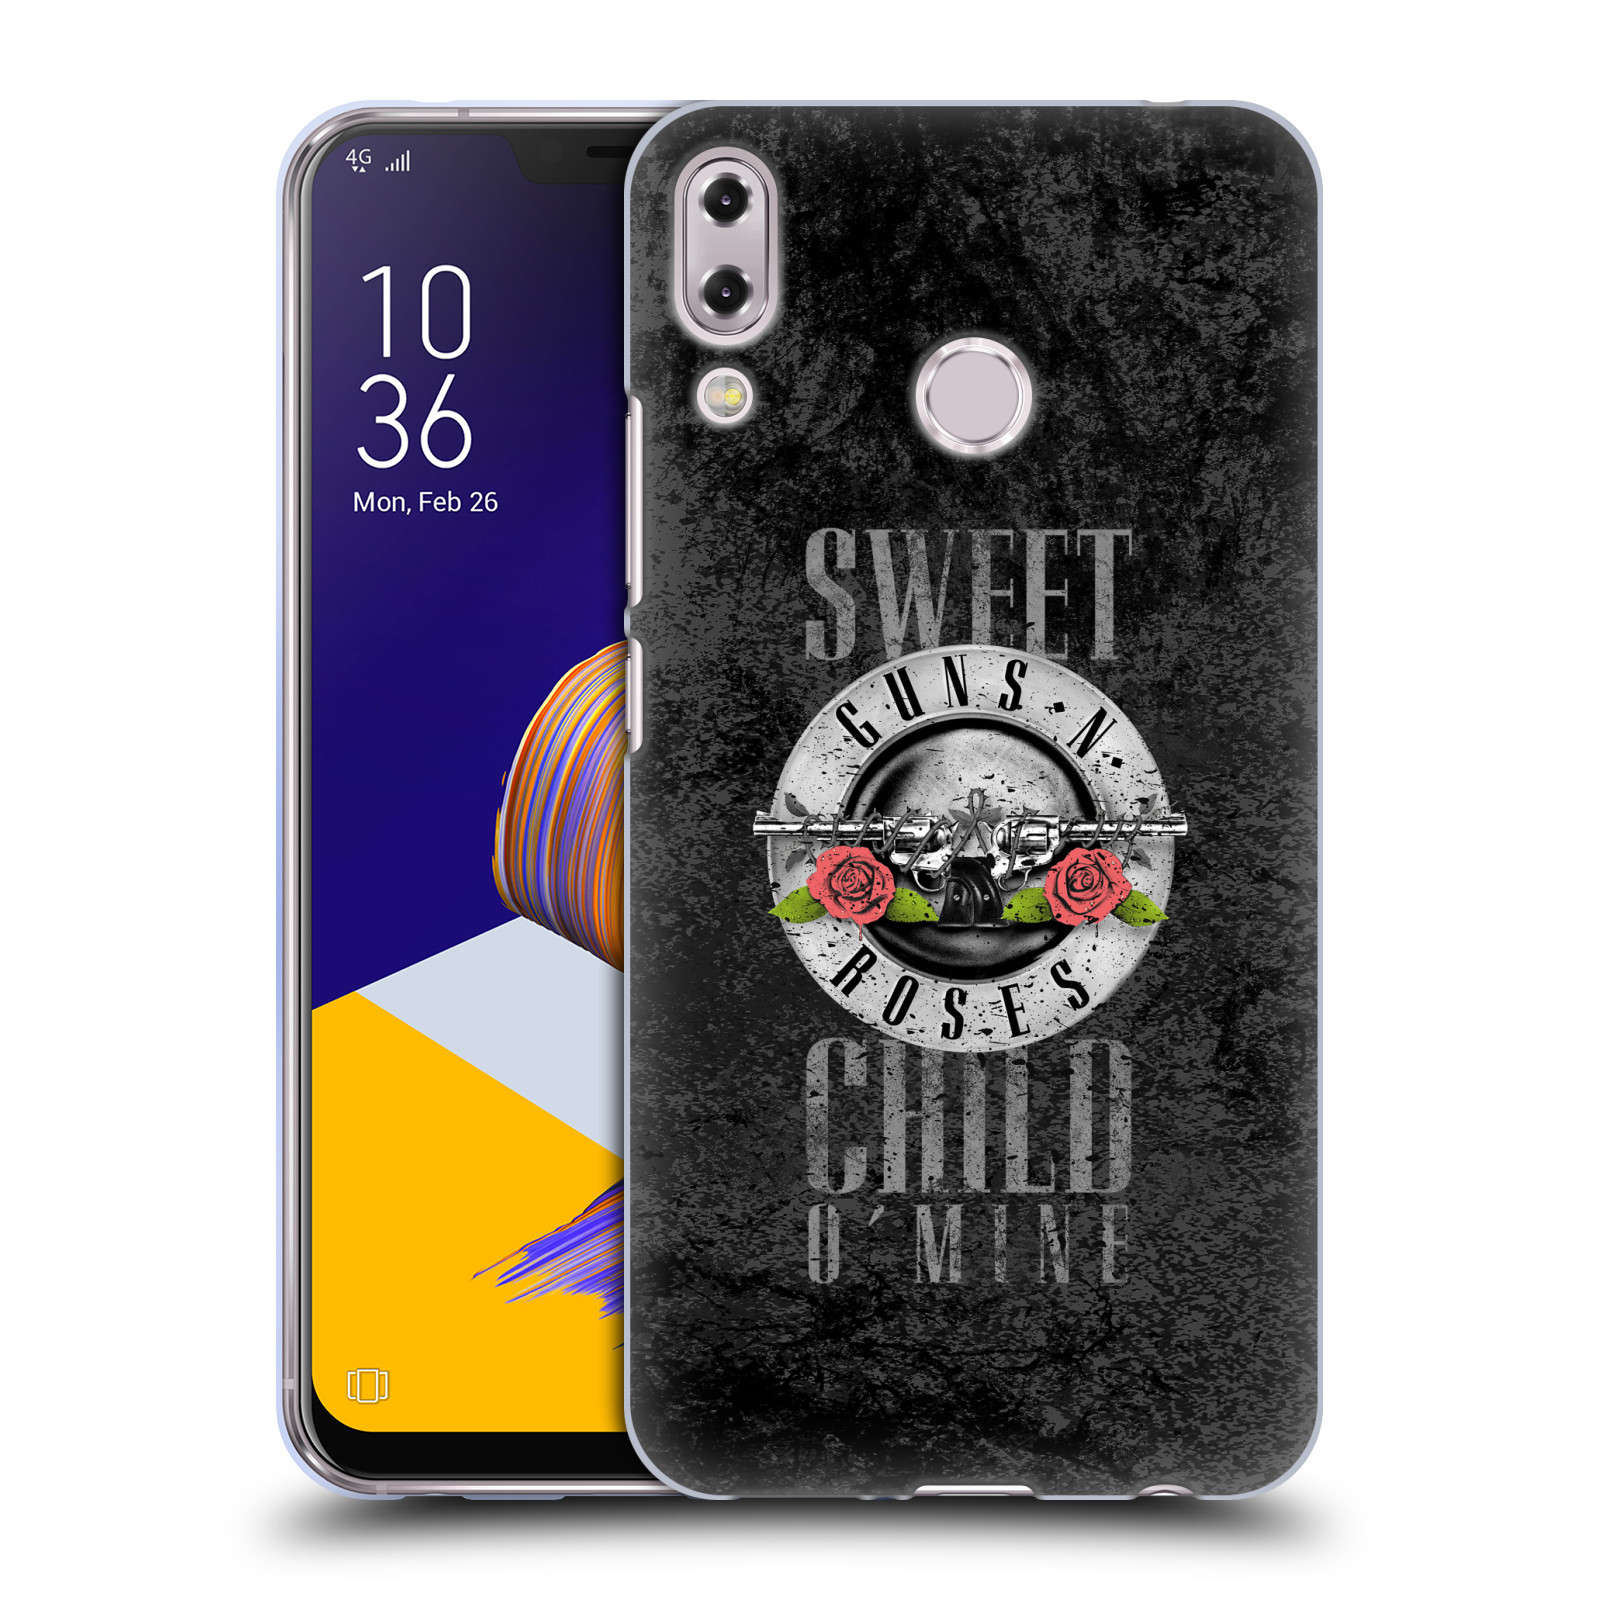 Silikonové pouzdro na mobil Asus ZenFone 5 ZE620KL - Head Case - Guns N' Roses - Sweet Child